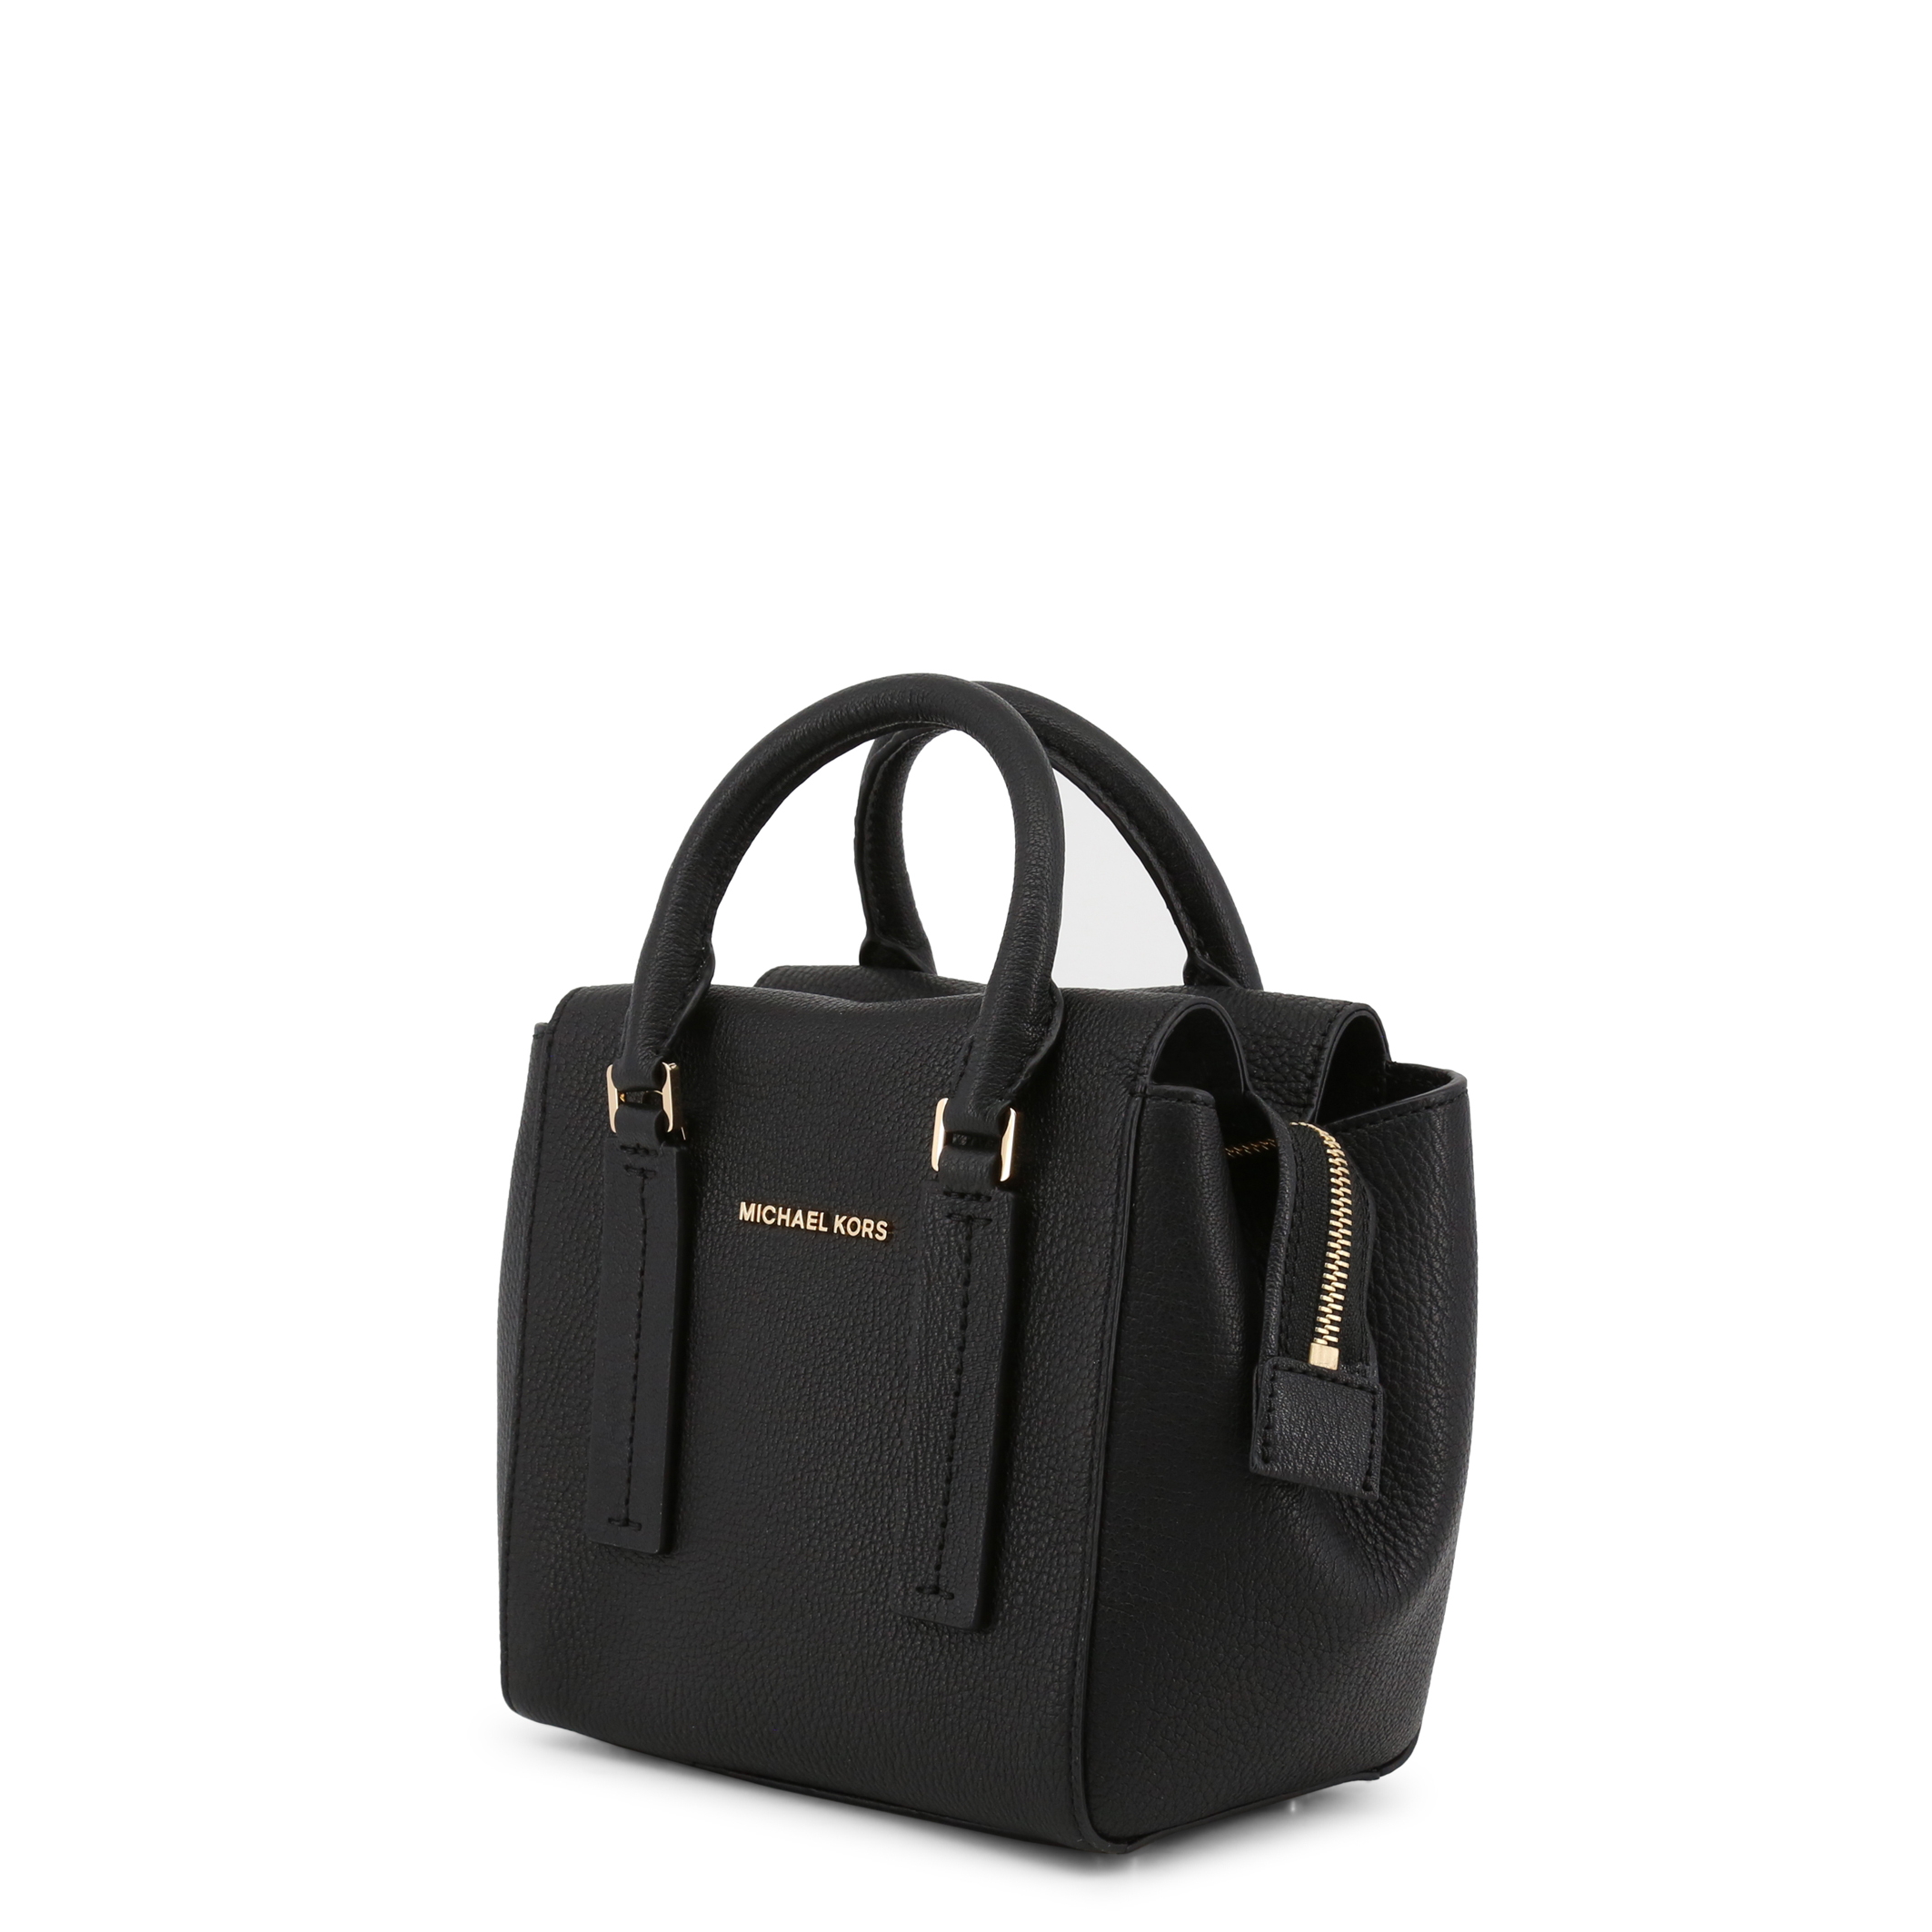 Sacs à Main  Michael Kors 30S9G0AM0T black